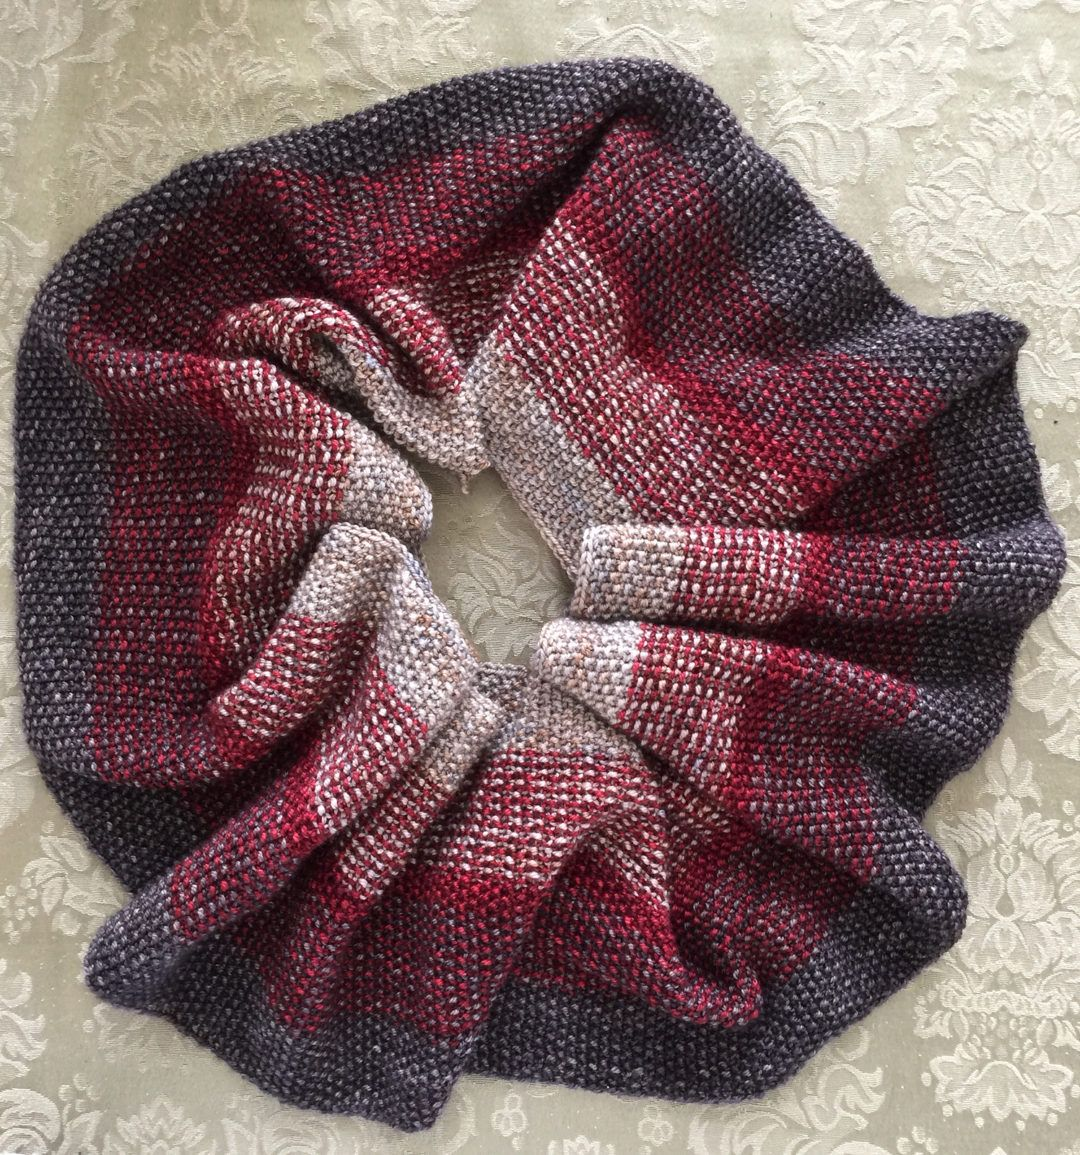 Free Knitting Pattern for Nightfall Infinity Scarf Cowl | knitting ...